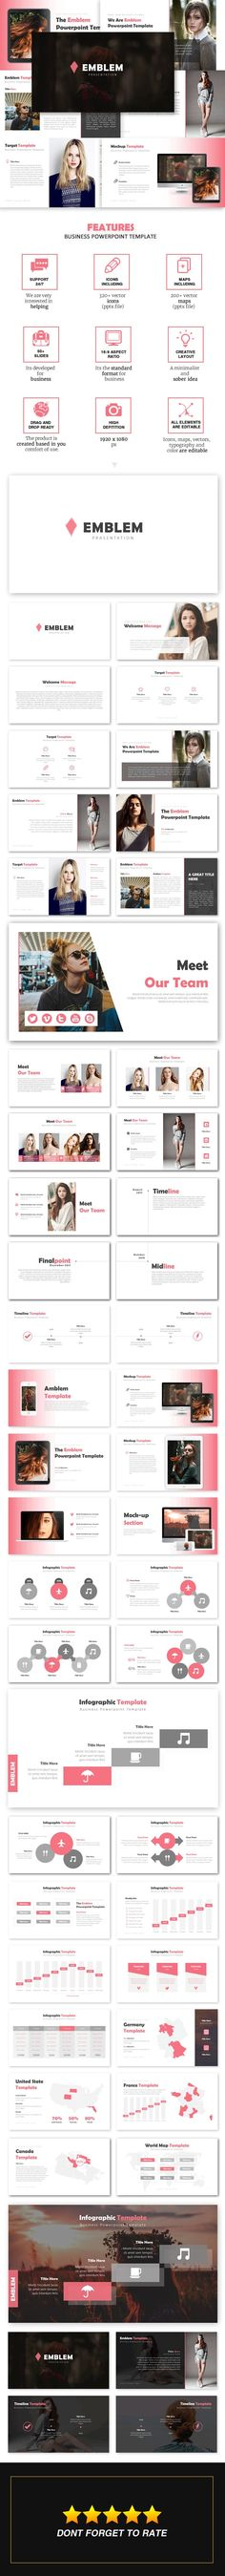 Emblem - Business Powerpoint Template - Business #PowerPoint Templates